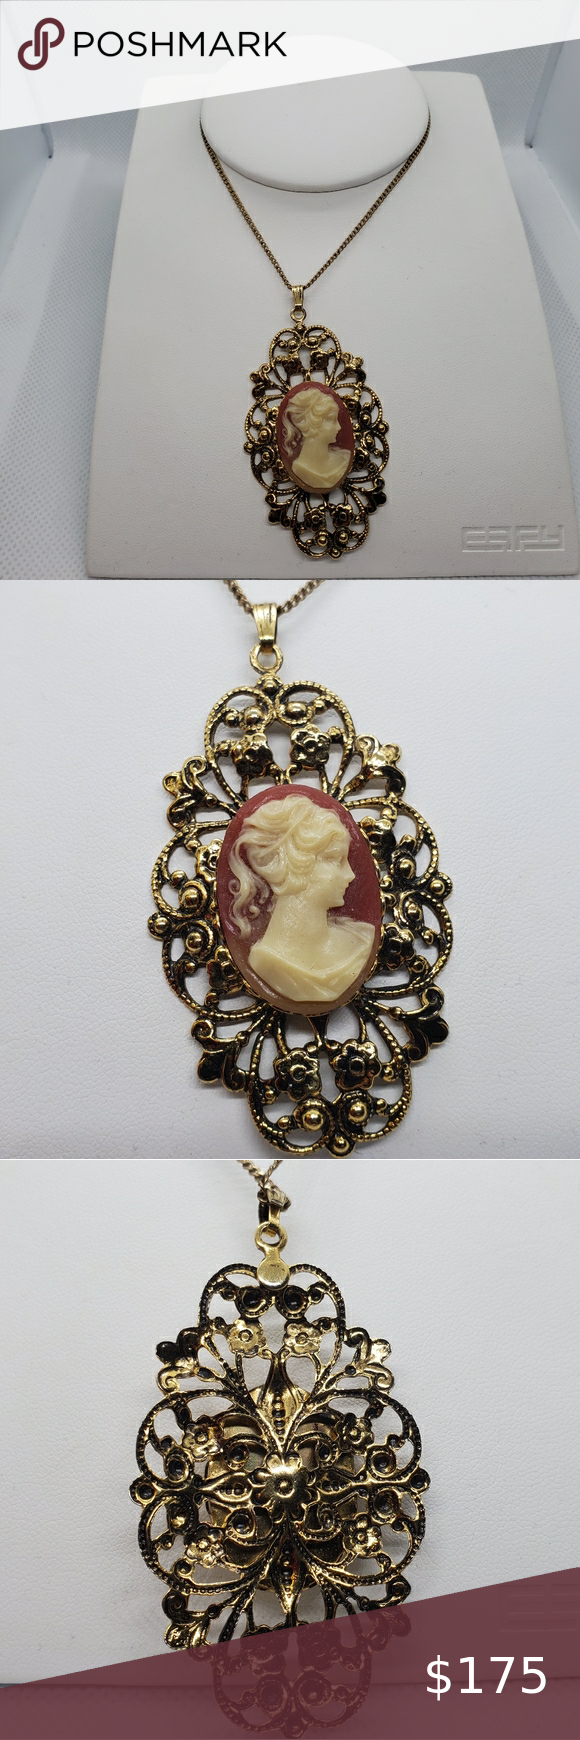 Vintage 12 Karat Gold Necklace Cameo Pendant In 2020 Cameo Pendant Womens Jewelry Necklace Pendant